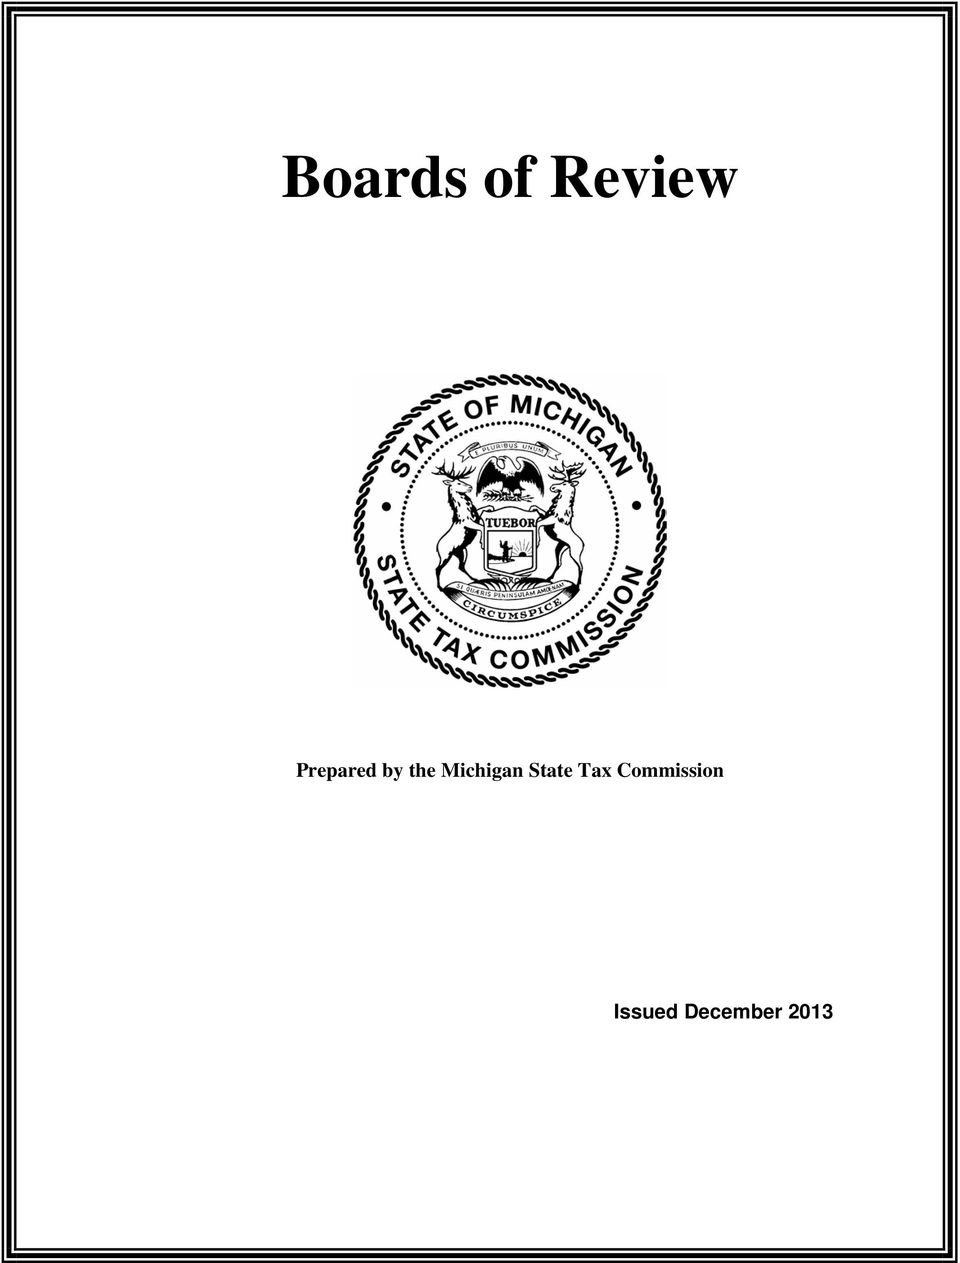 Boards of Review. Prepared by the Michigan State Tax